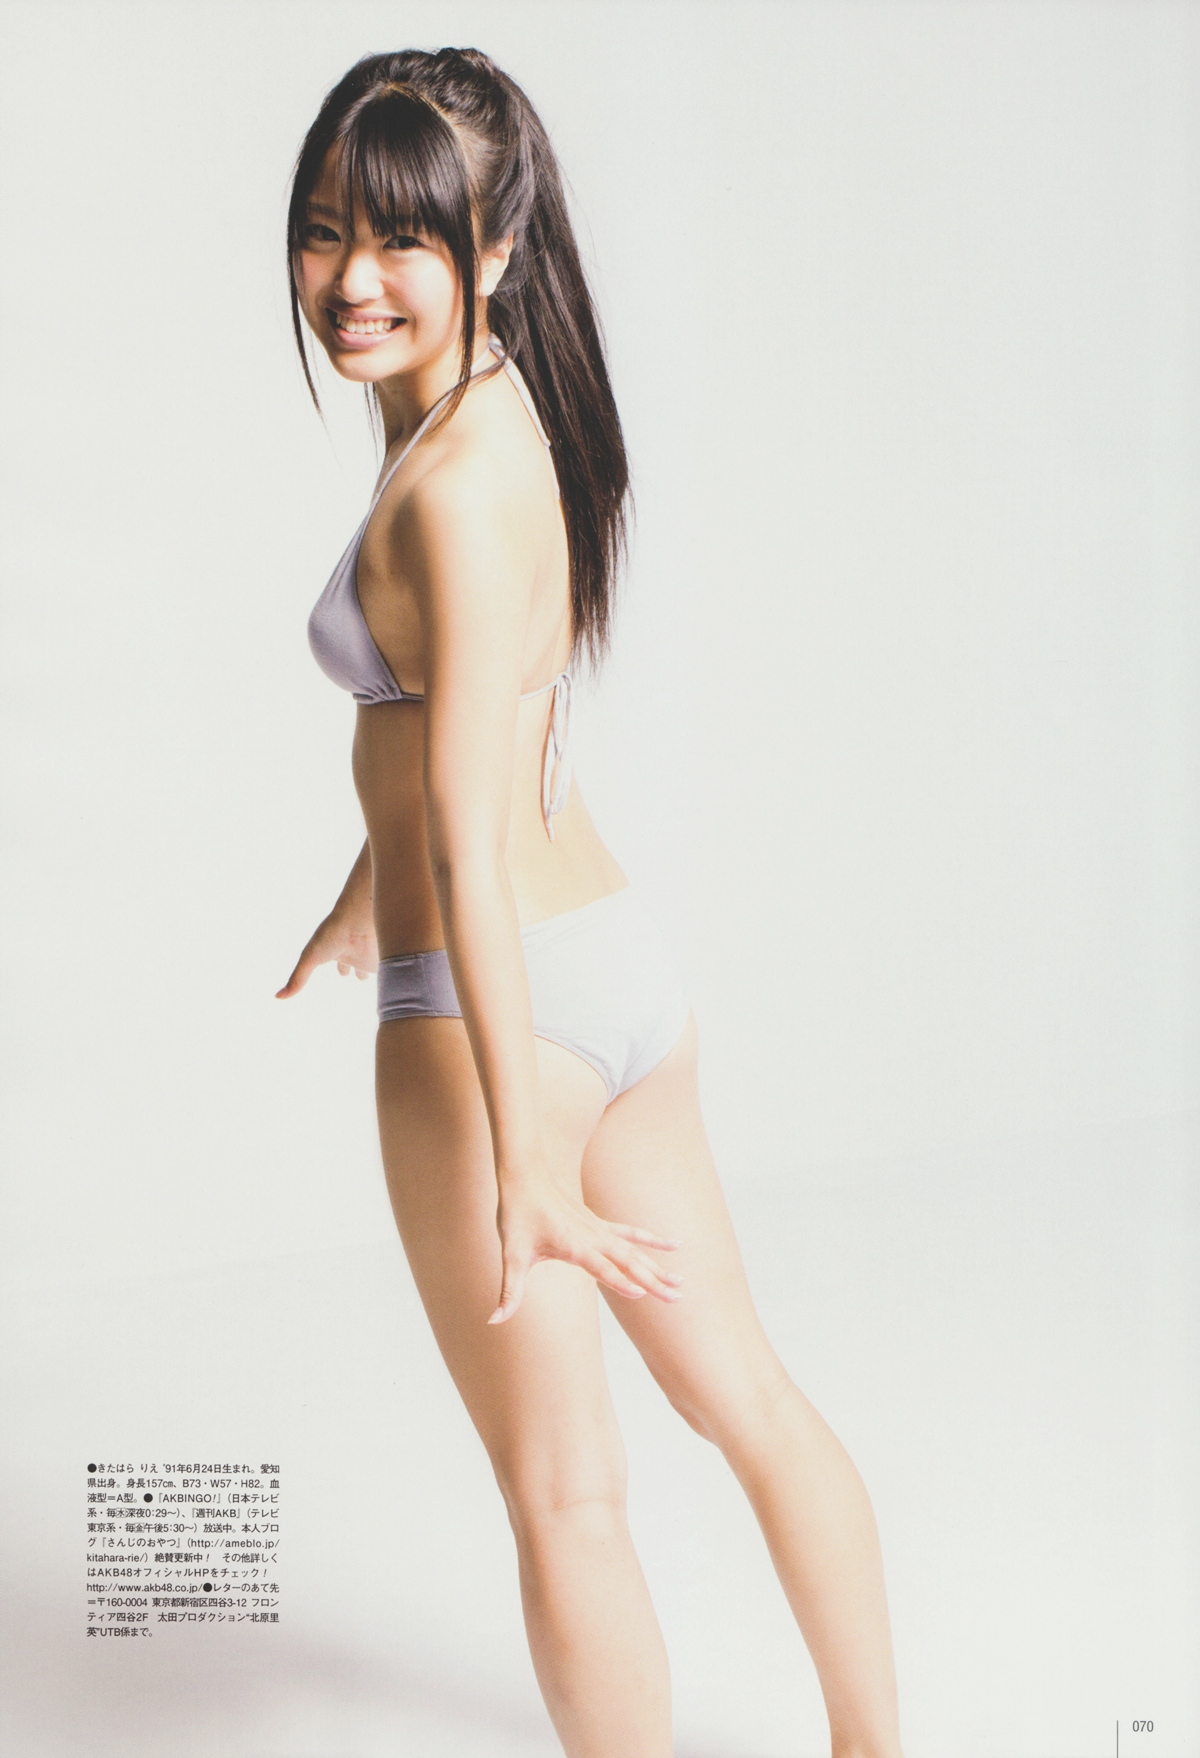 Japanese-pop-idol-and-model-Rie-Kitahara-026-from-sexvcl.net_ Japanese pop idol and model Rie Kitahara 北原 里英 leaked nude sexy